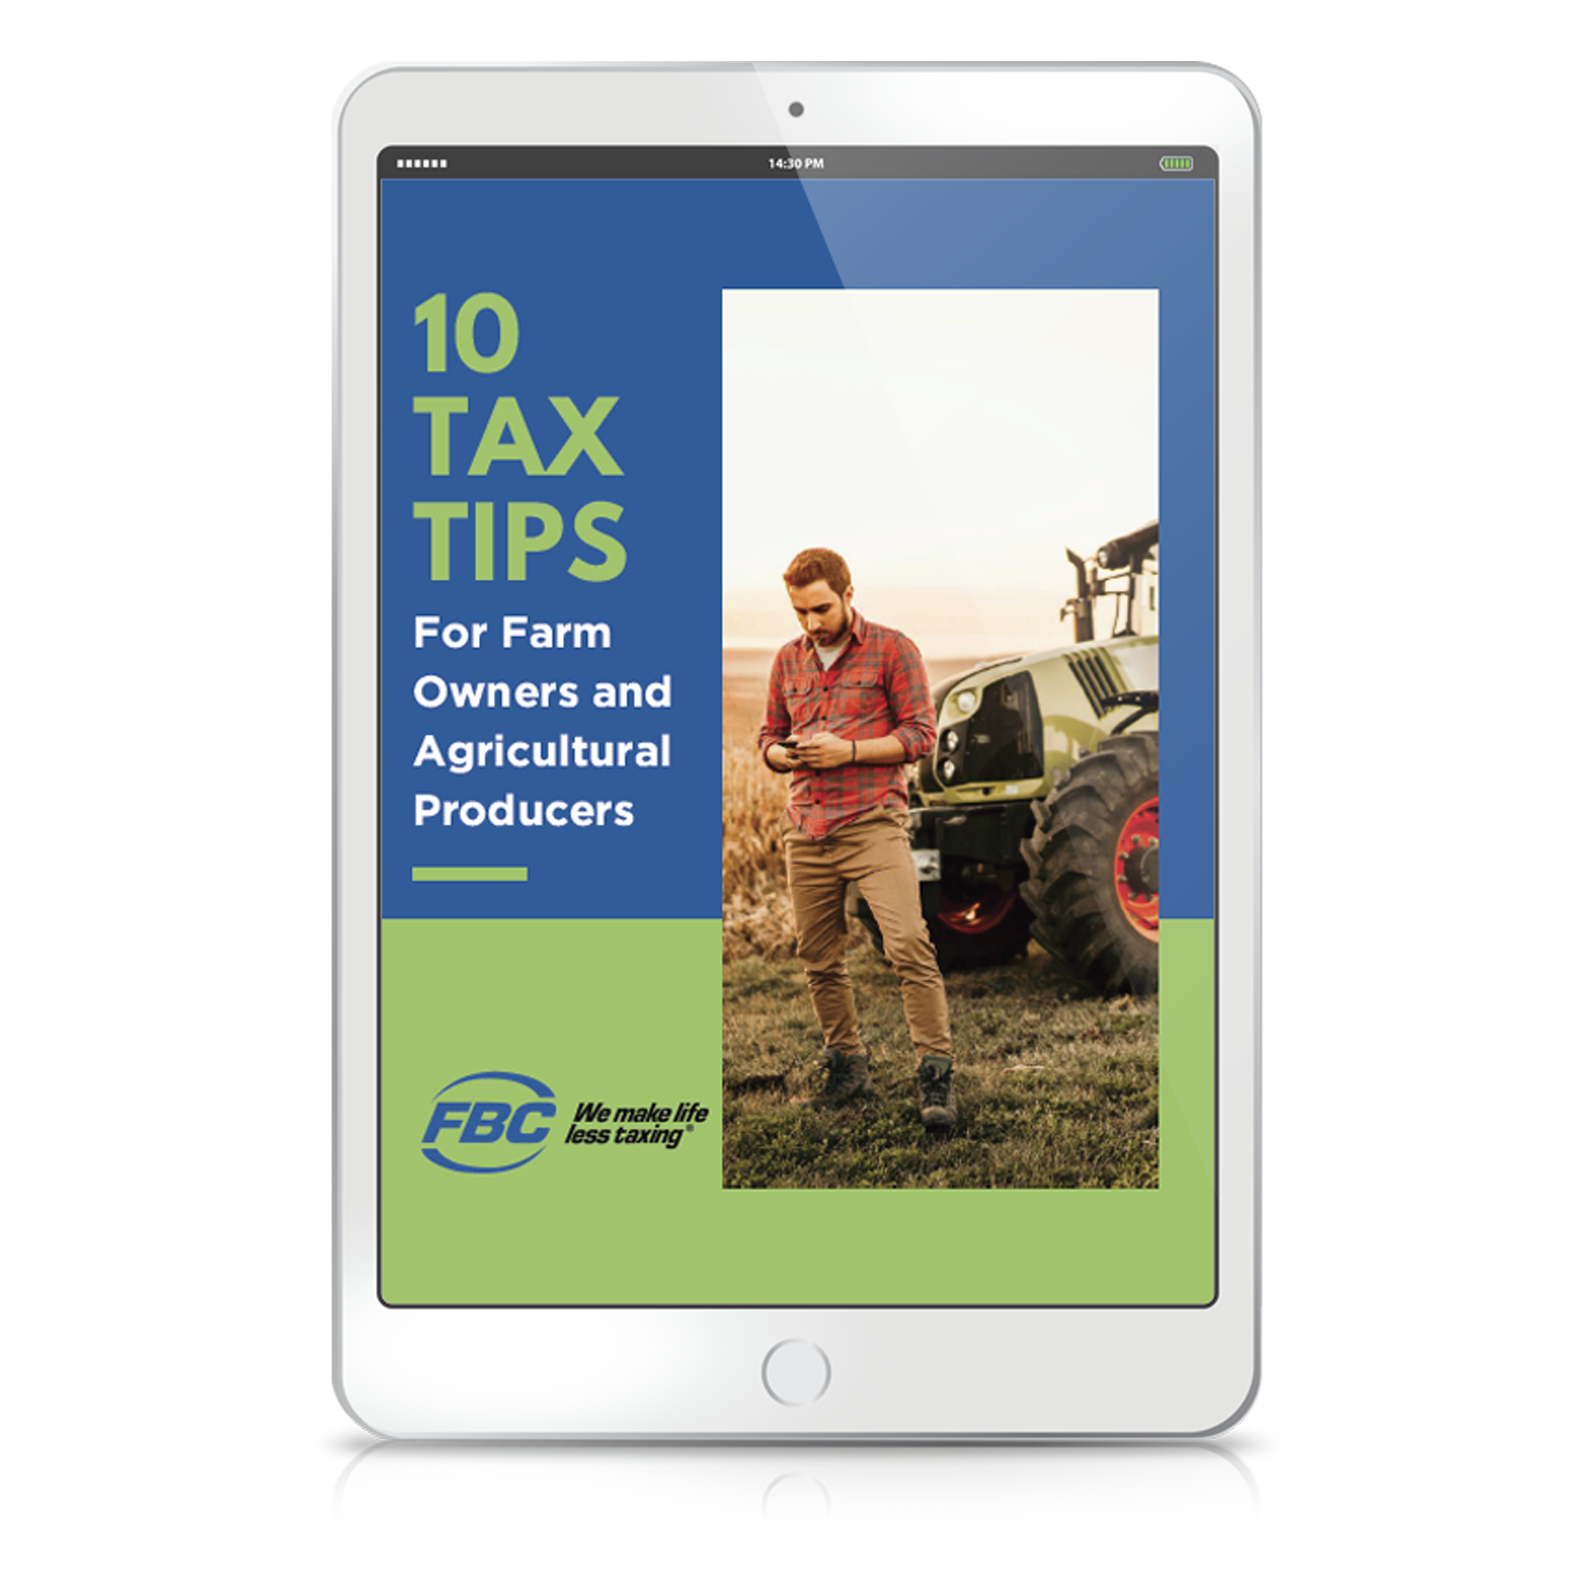 10 Tax Tips Farmers and Agricultural Producers